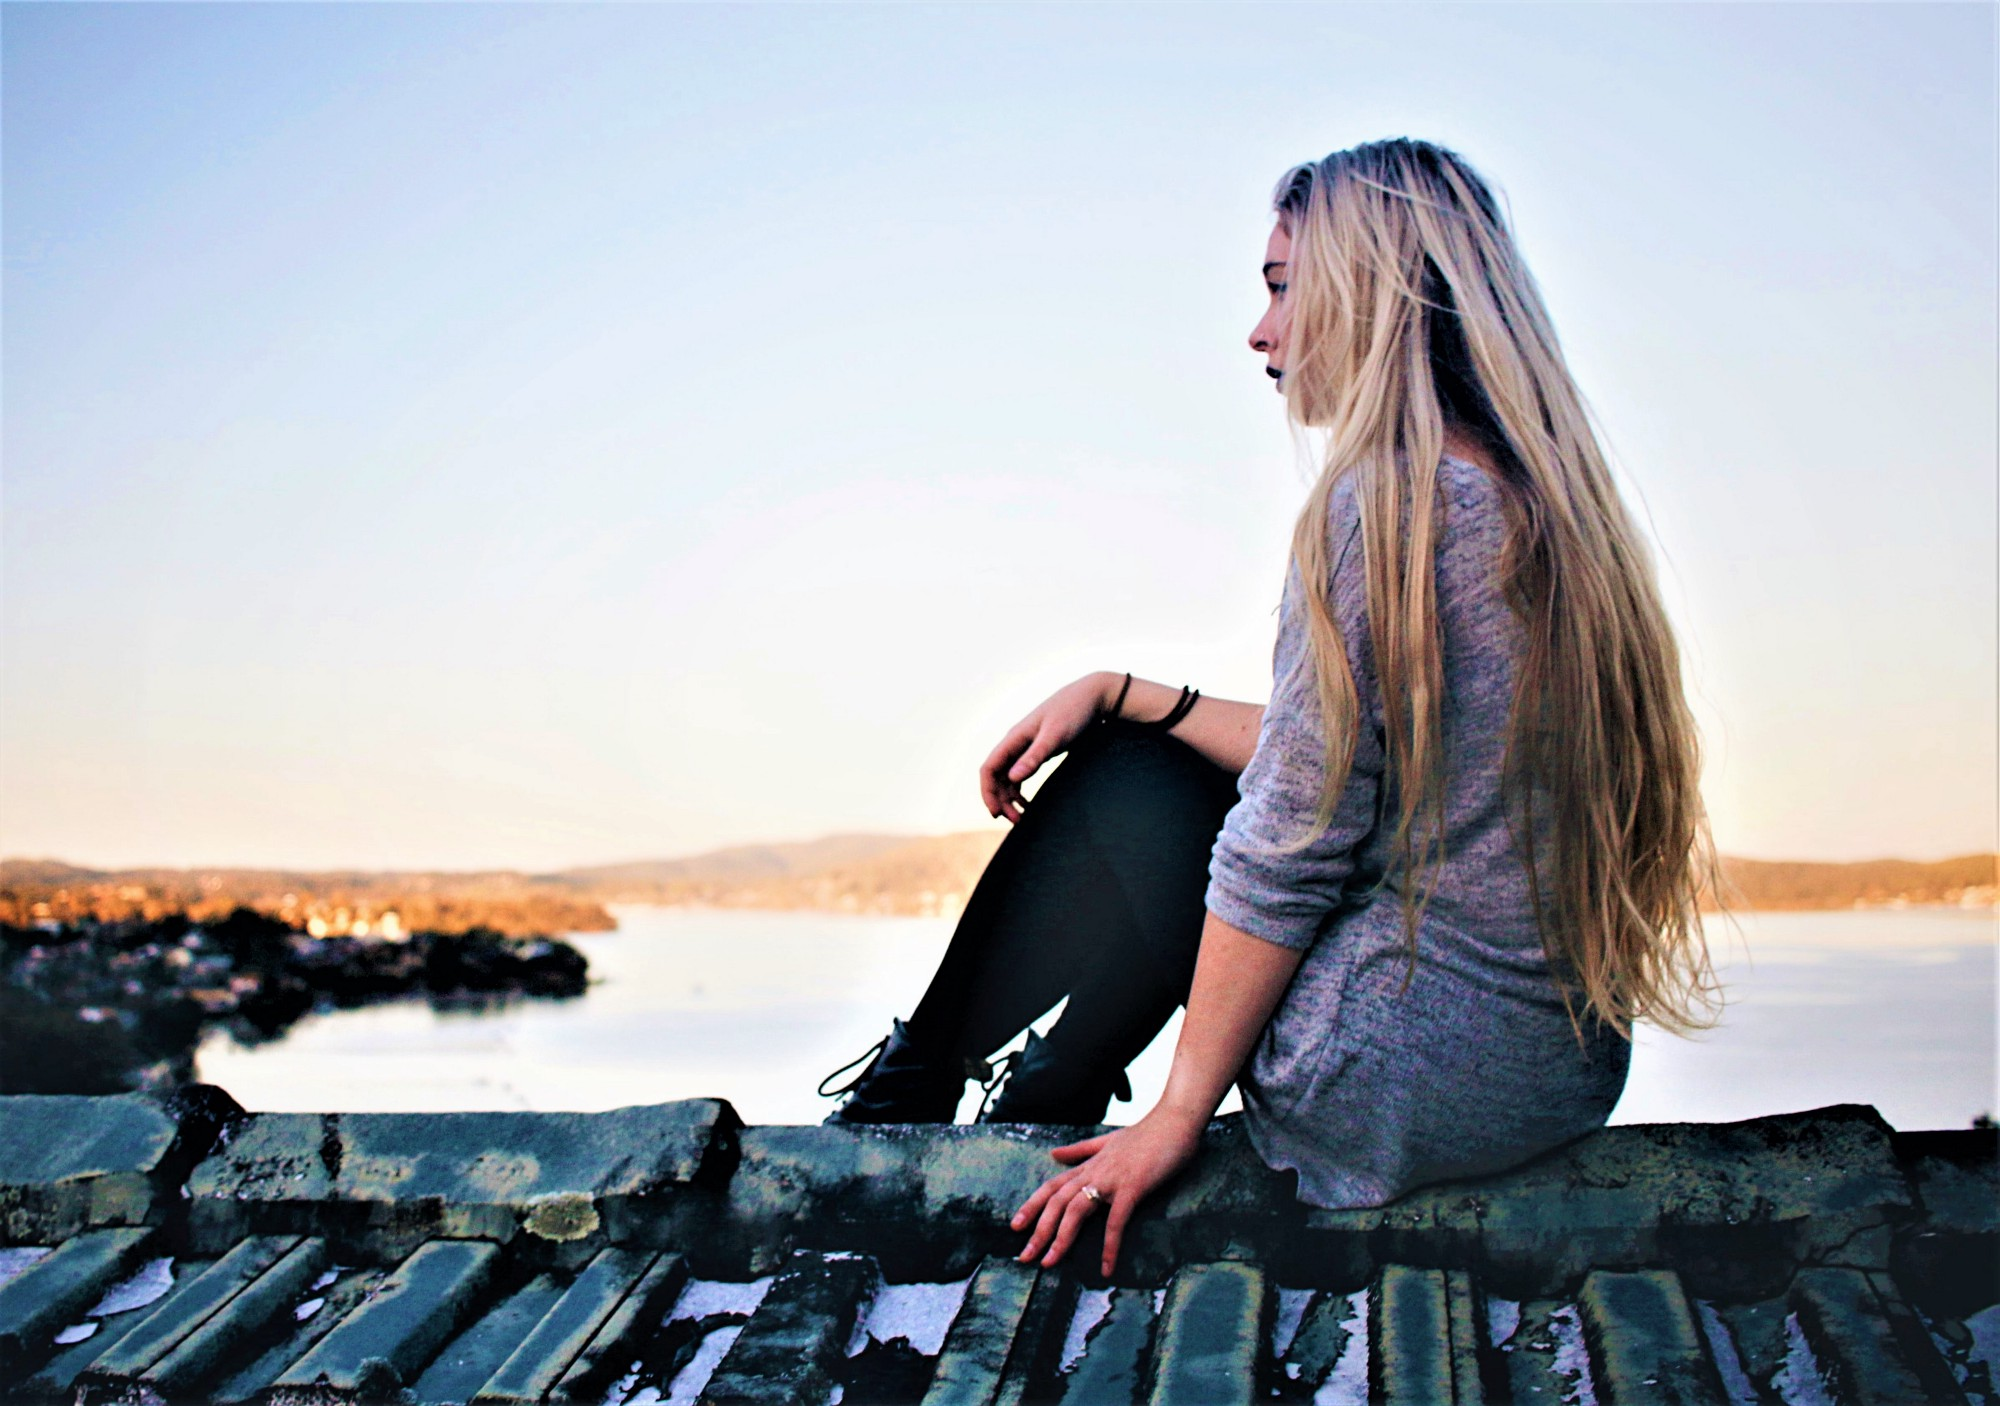 side view of girl with long blonde hair sitting on rustic wooden pier looking out over lake